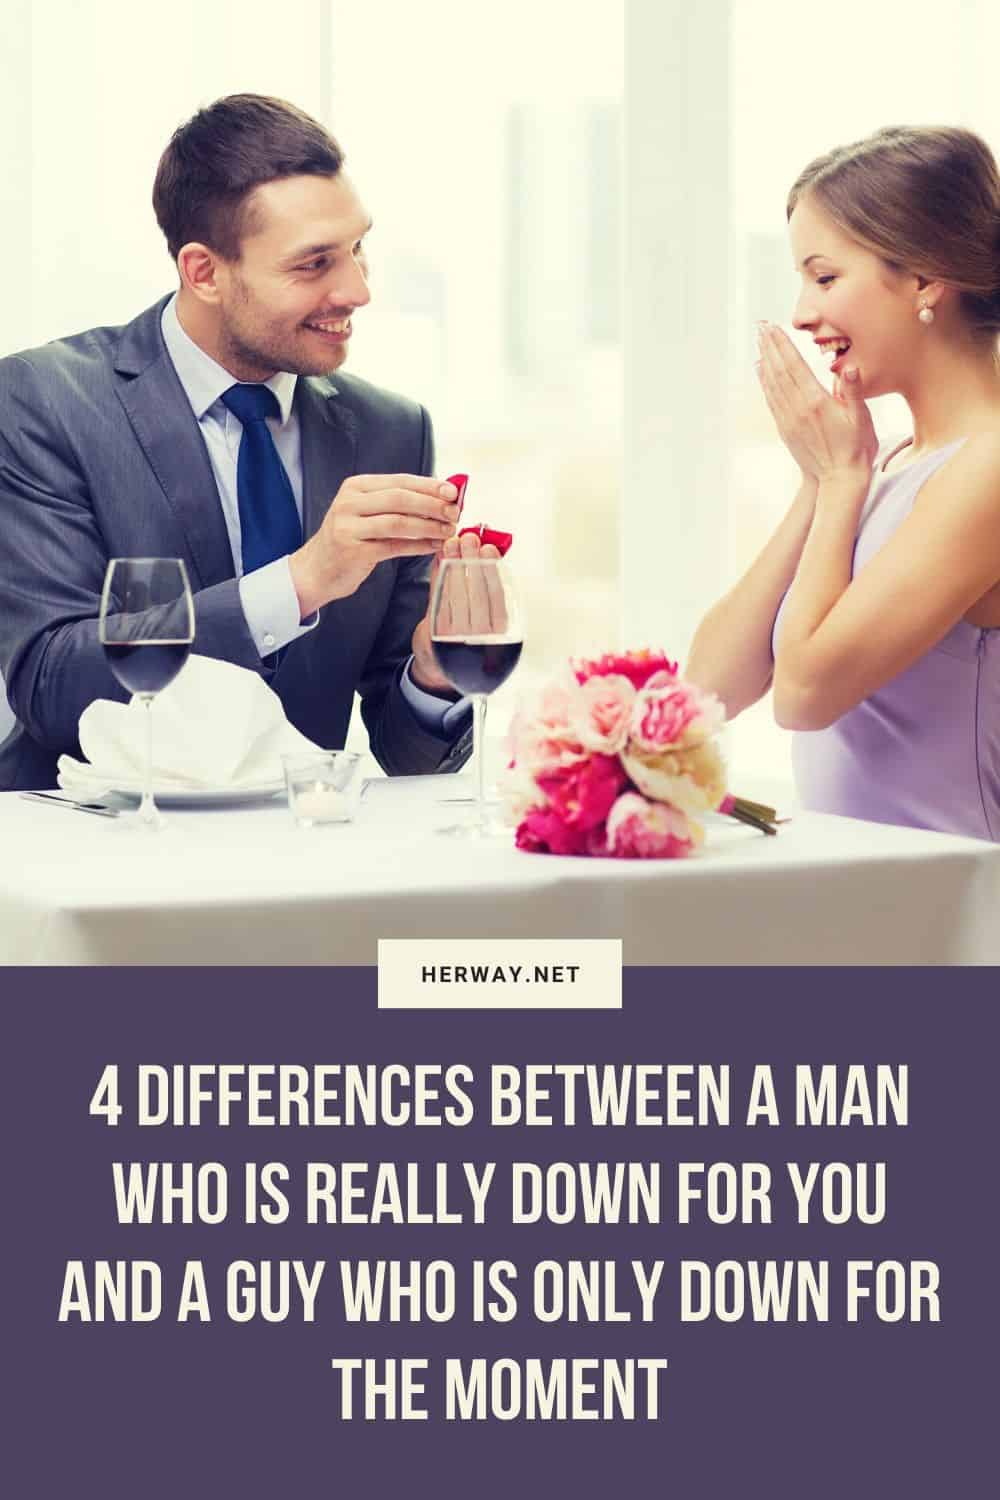 4 Differences Between A Man Who Is Really Down For You And A Guy Who Is Only Down For The Moment